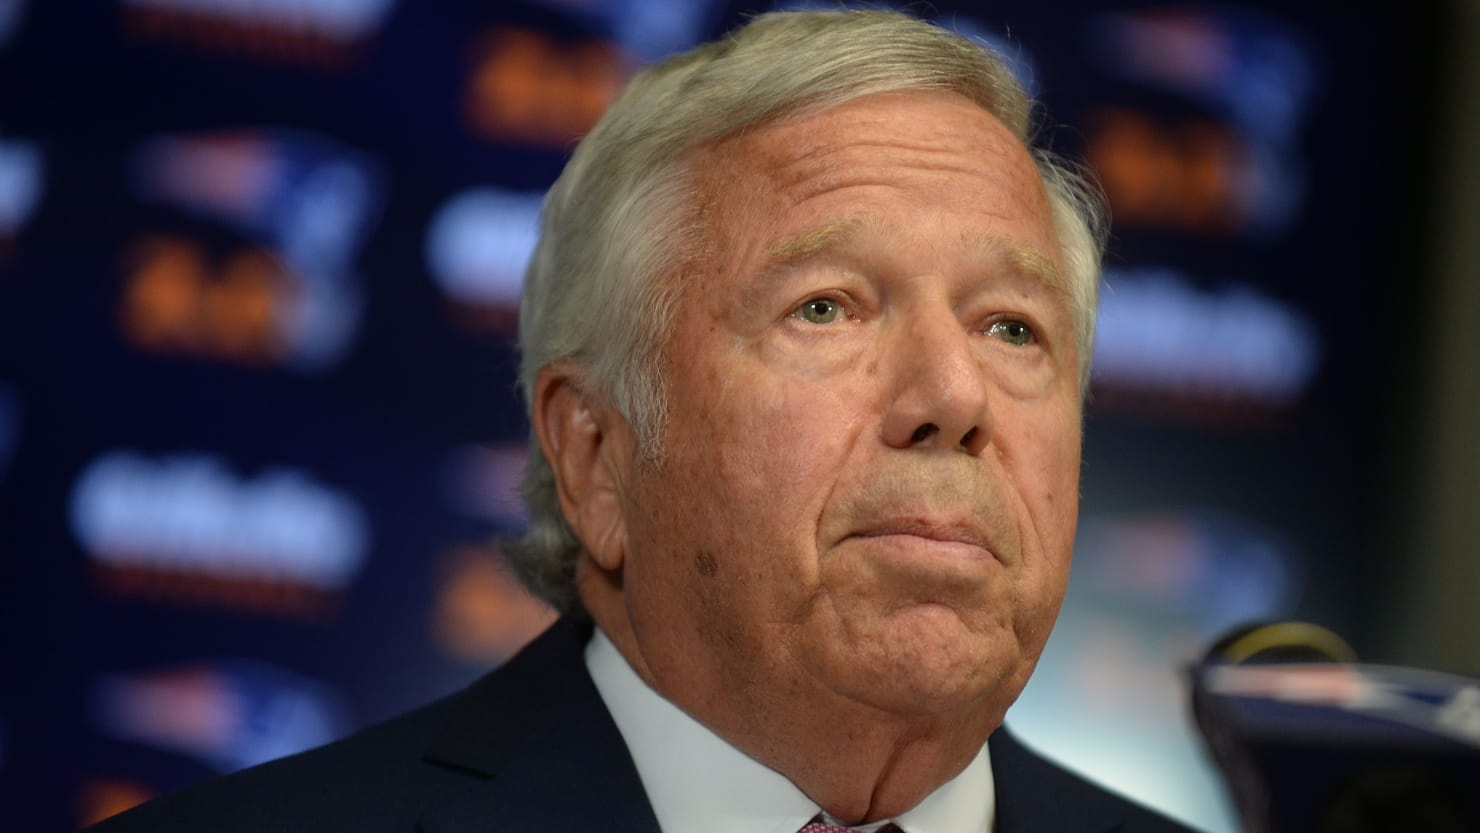 Video of Robert Kraft at Florida Day Spa to Be Released by Prosecutors